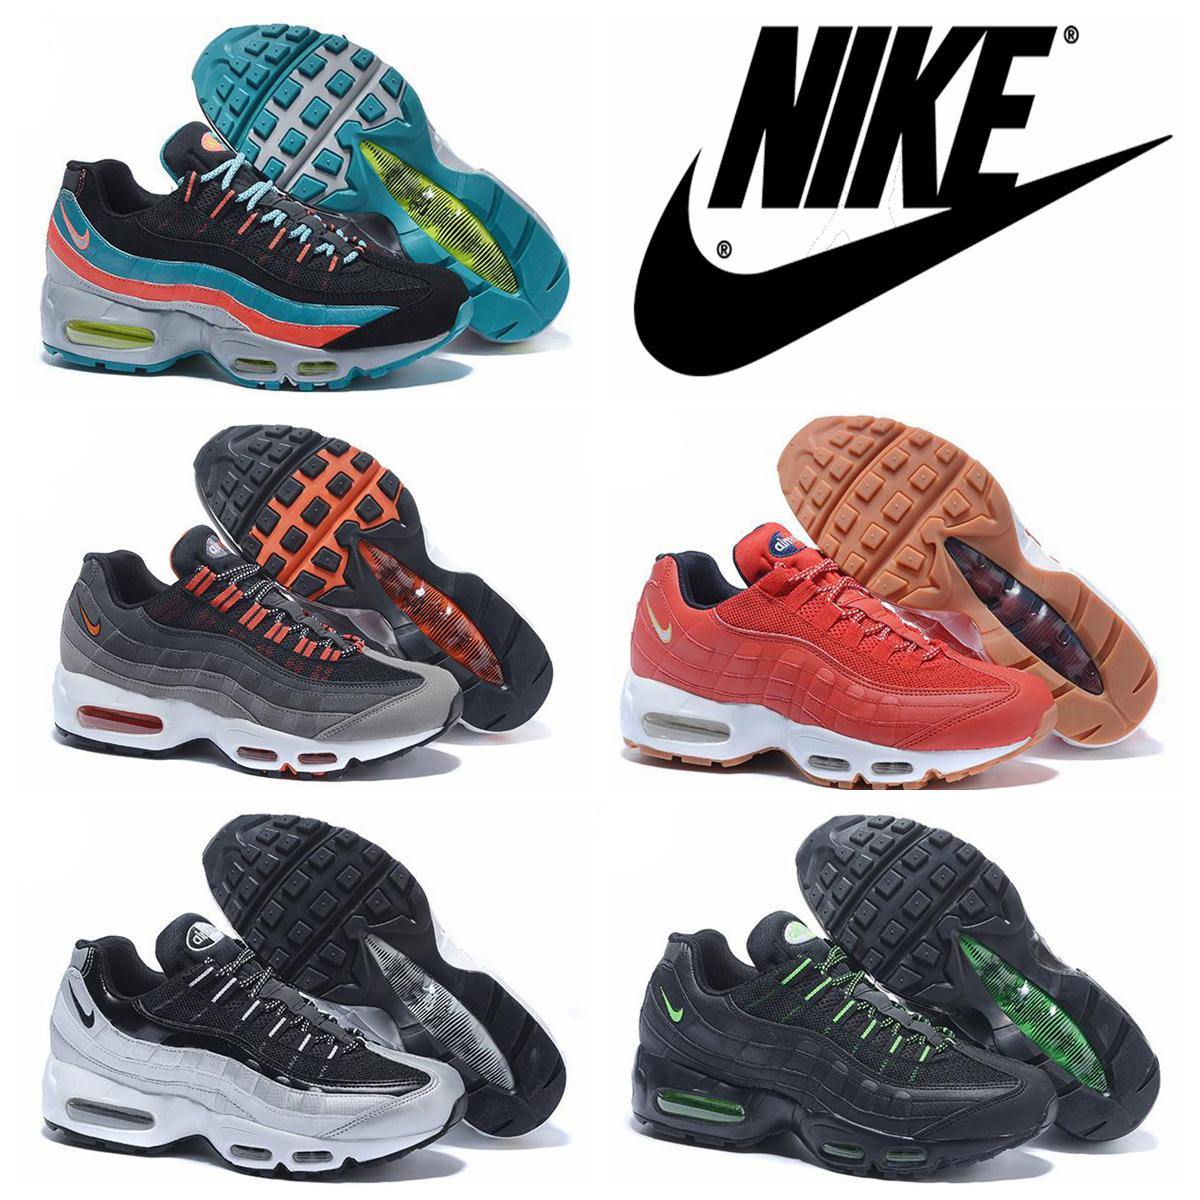 on sale 0bb46 2f8ee Nike 95 Air Max Greedy Federer Air Max 95 | Обекти